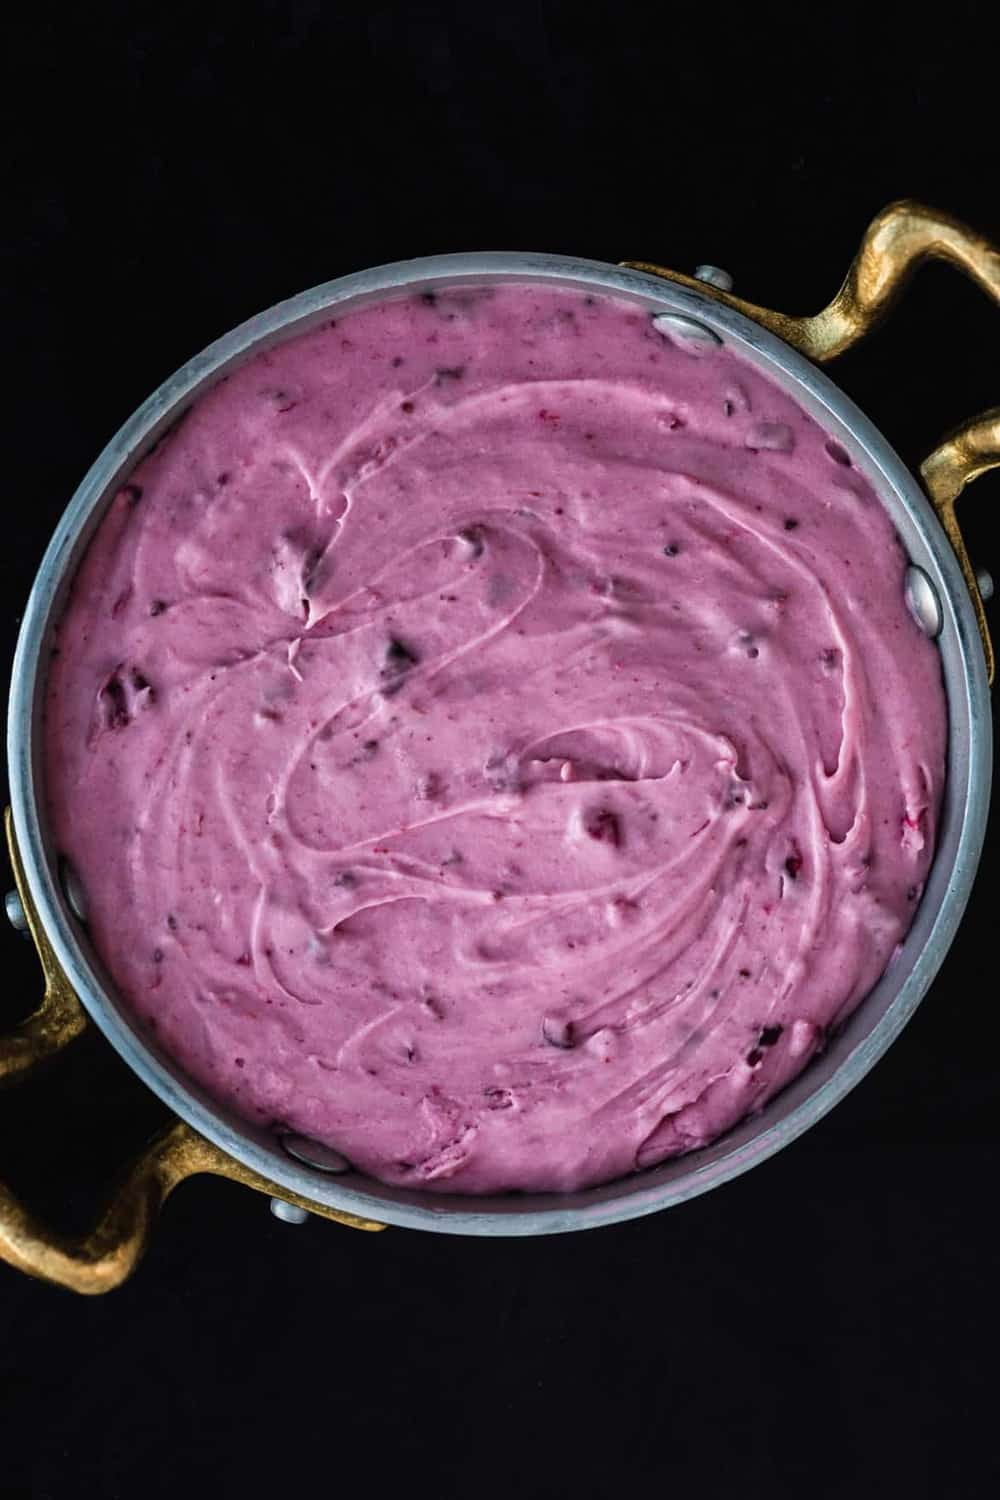 The cranberry cream cheese, in a silver bowl with gold handles, overhead shot on a black background.